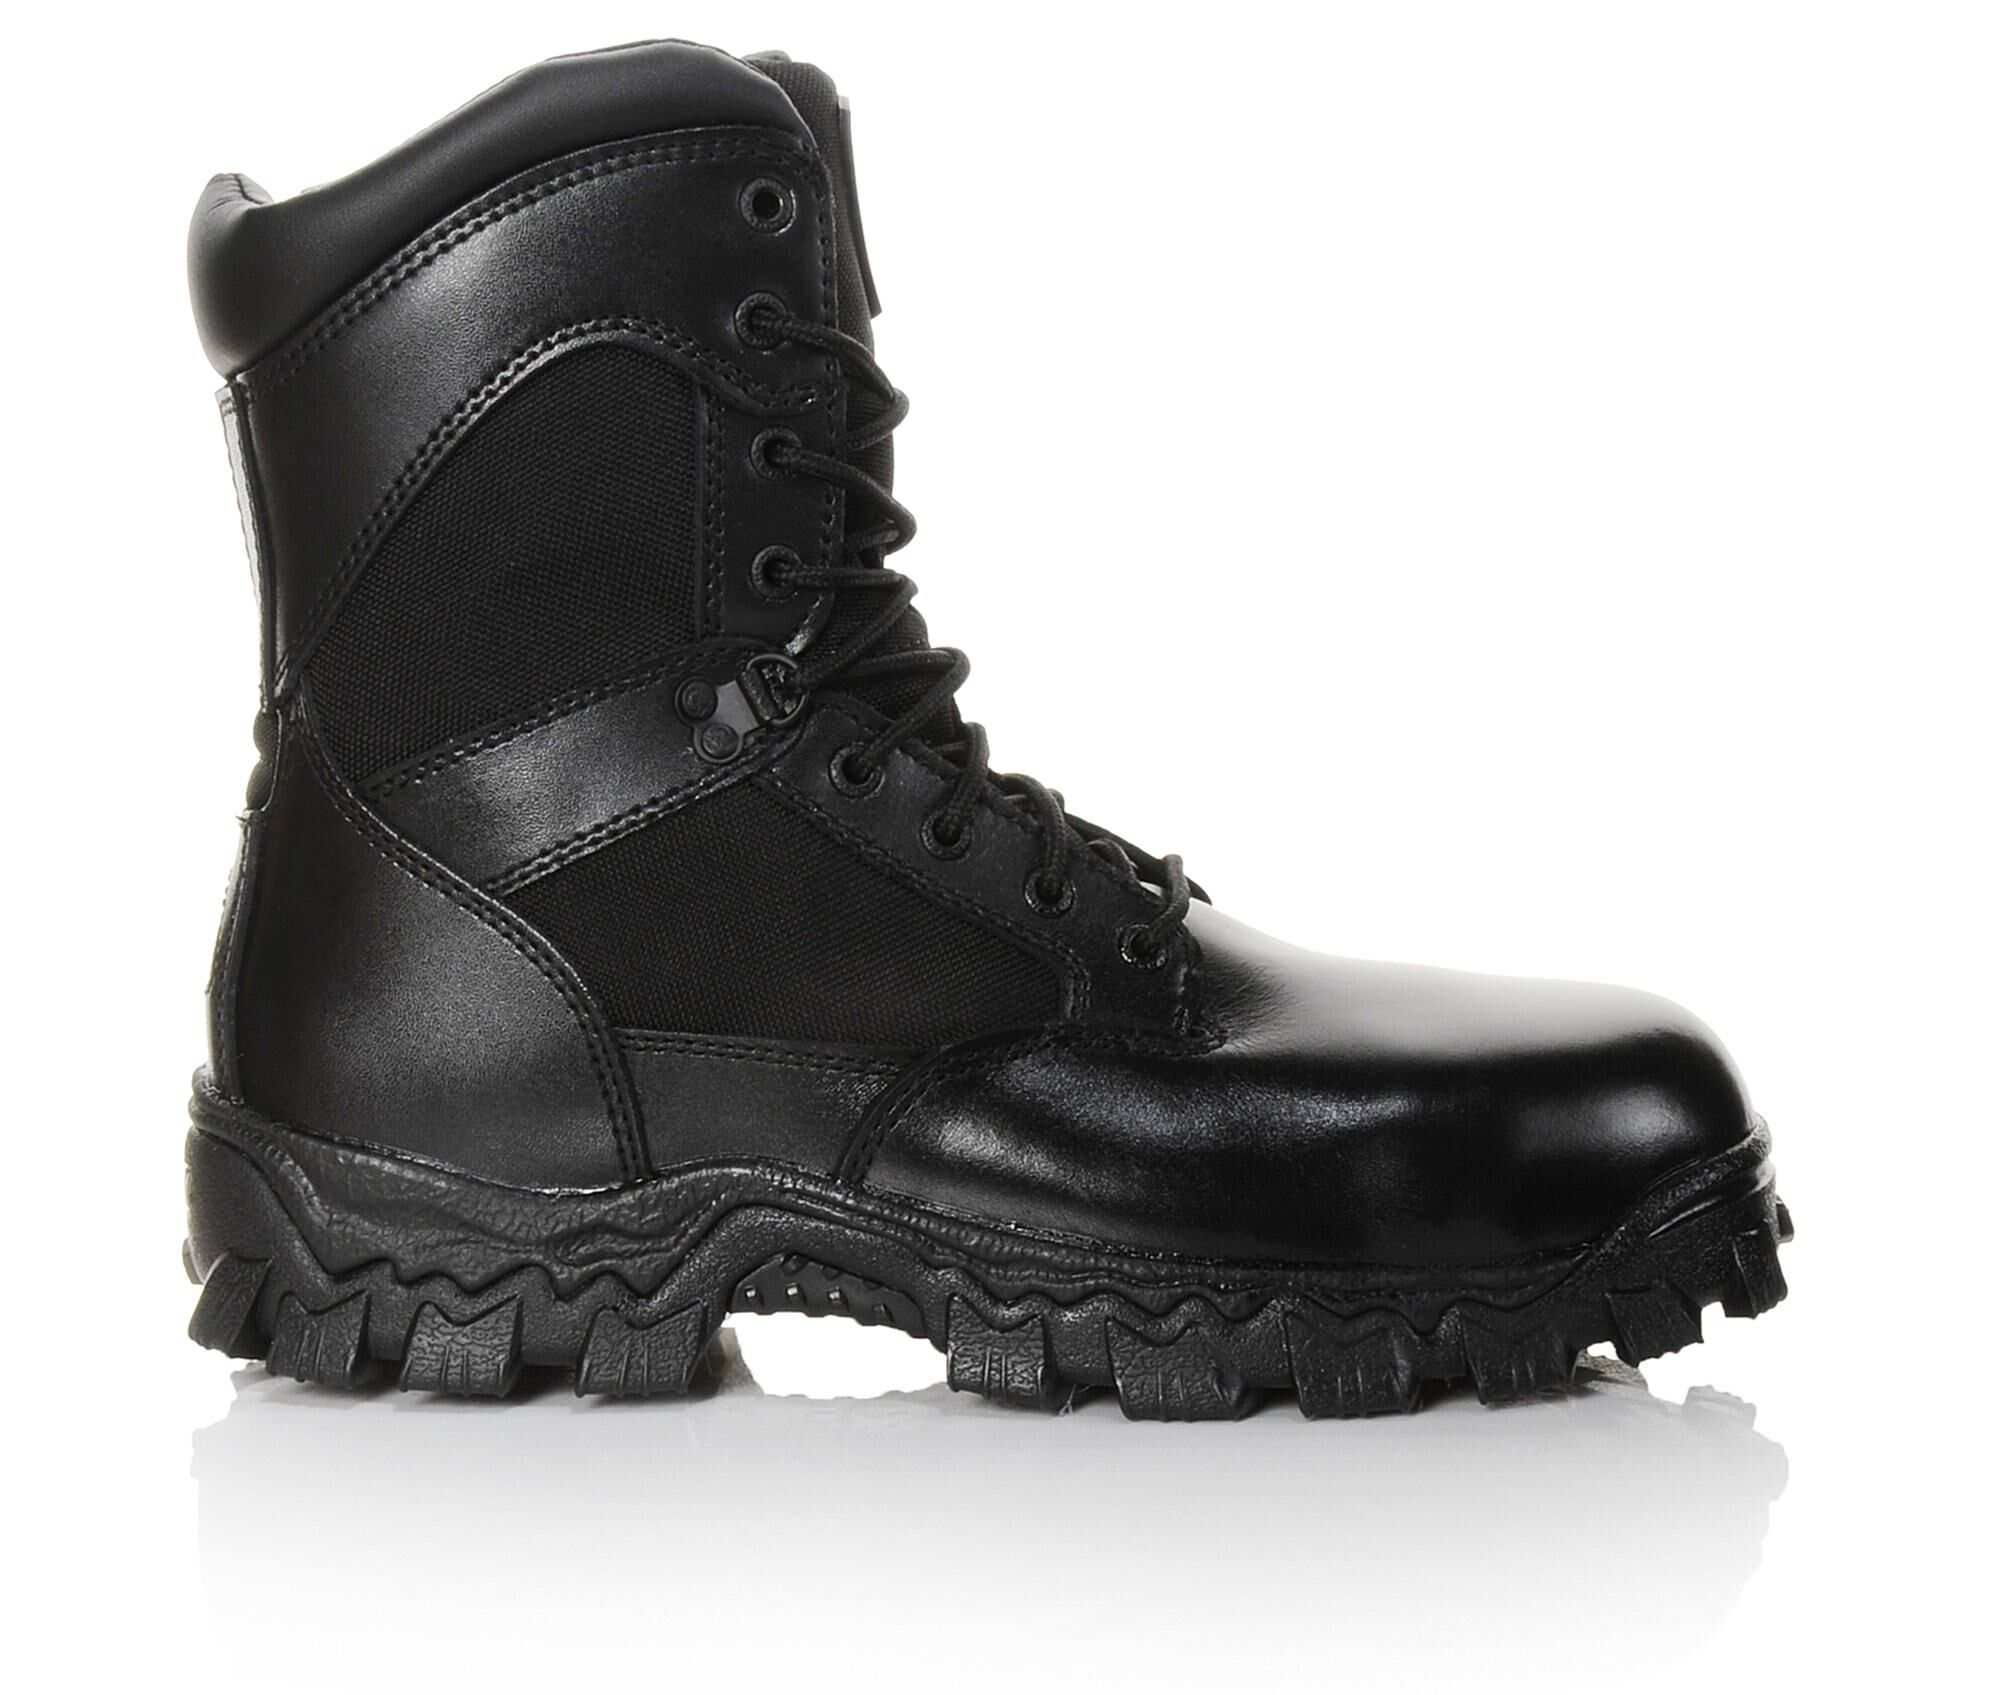 Men's Rocky 6173 Alpha Force Insulated Boots Black